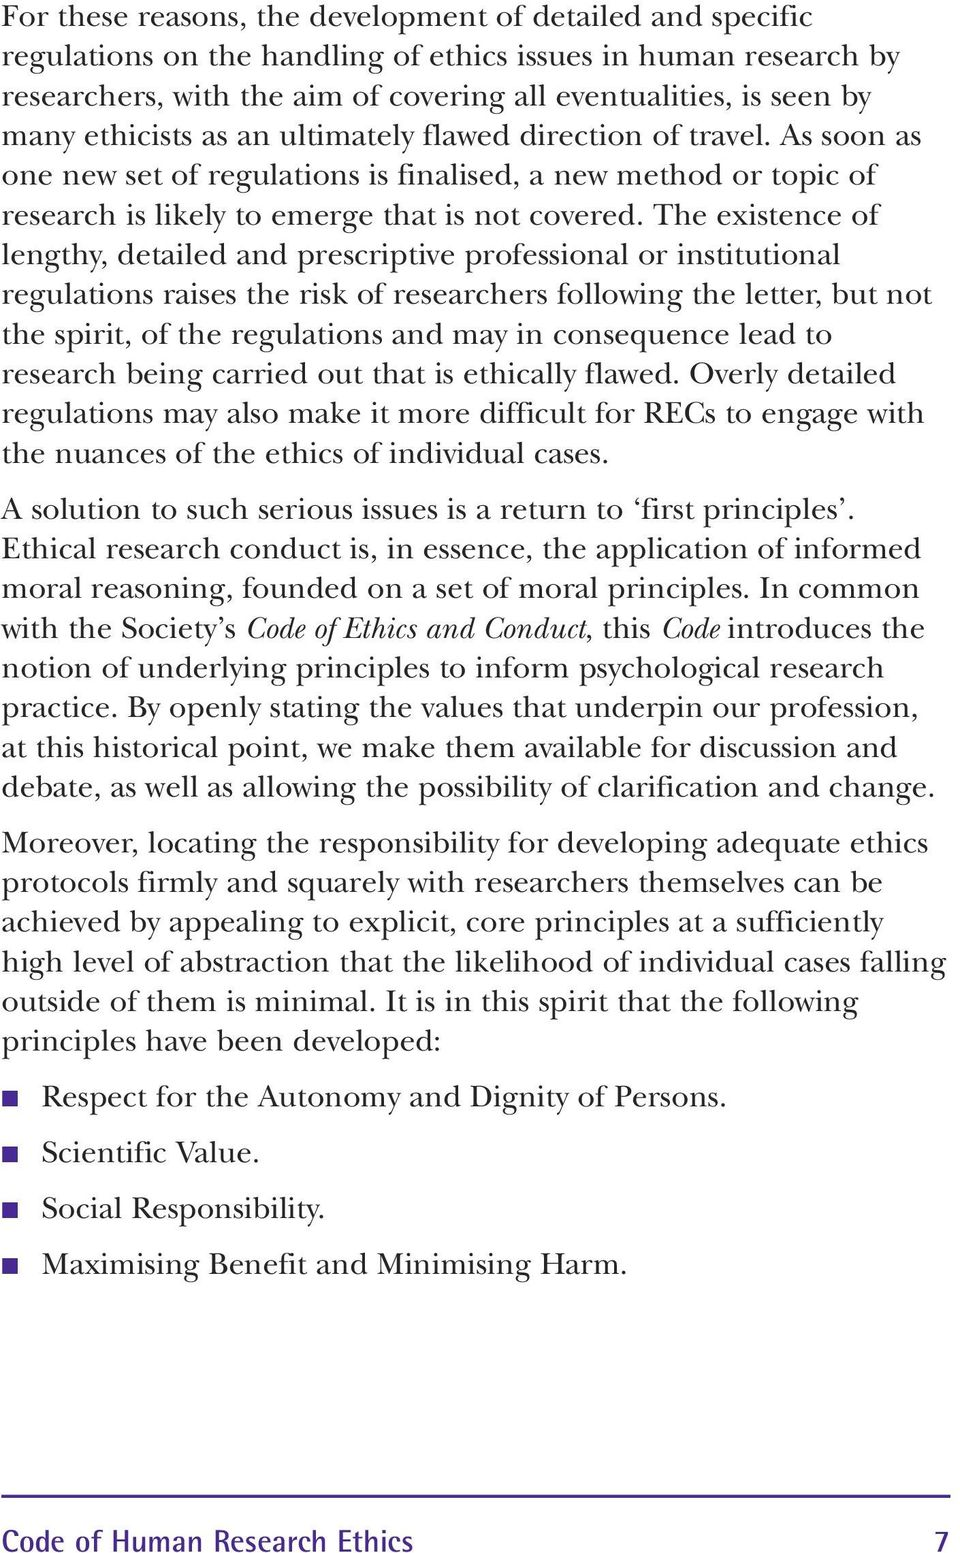 The existence of lengthy, detailed and prescriptive professional or institutional regulations raises the risk of researchers following the letter, but not the spirit, of the regulations and may in